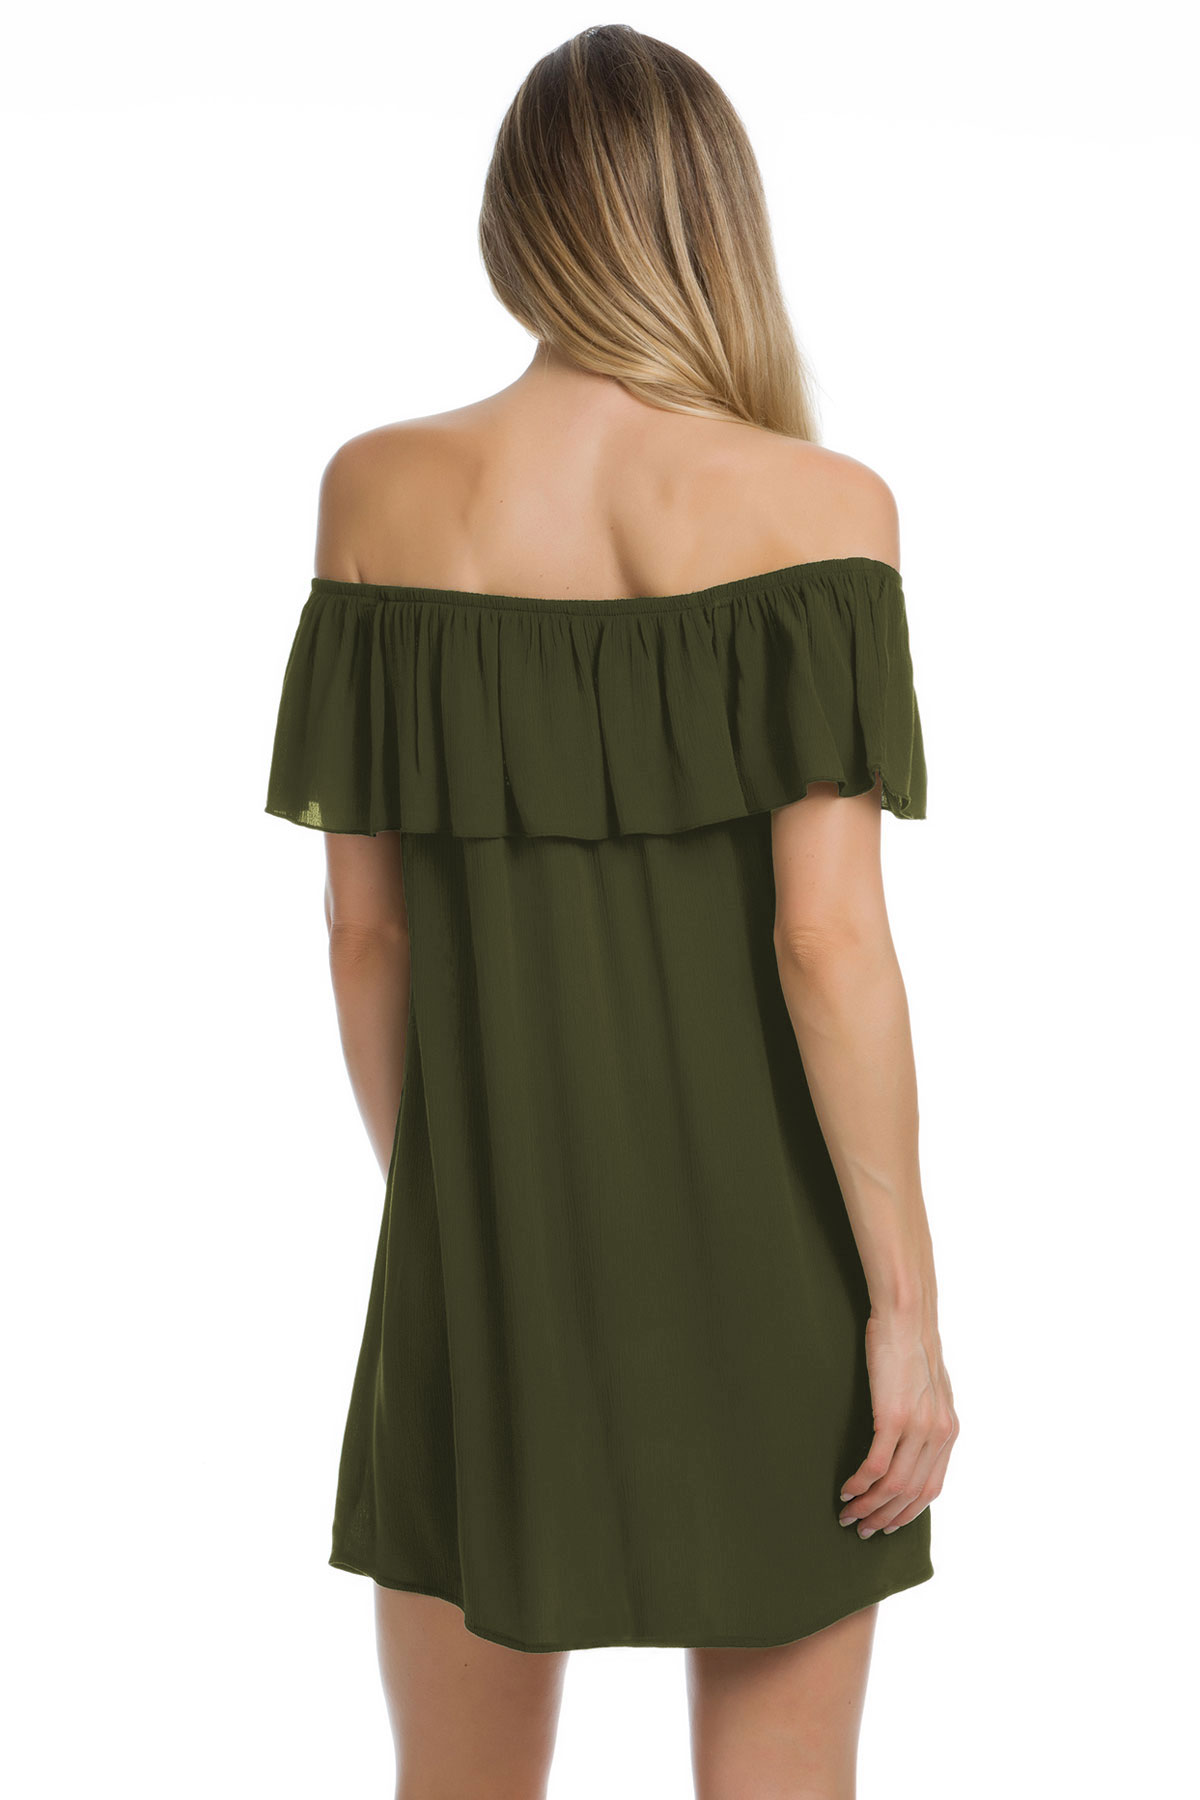 Off The Shoulder Flounce Ruffle Tunic - Bay Leaf 2